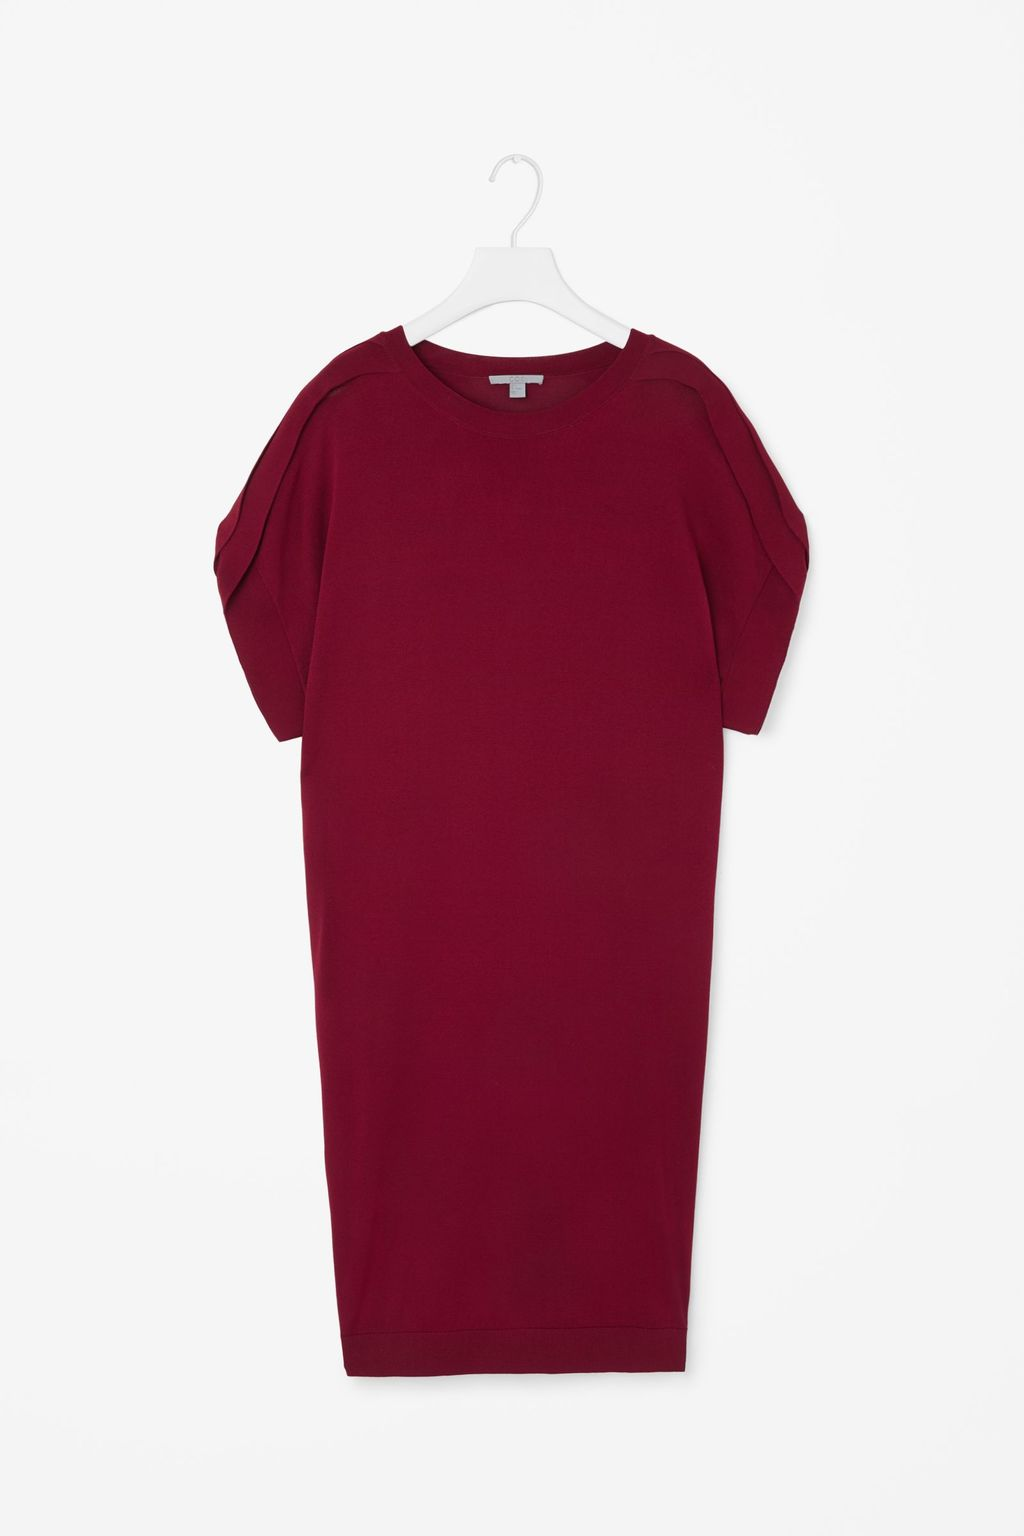 Dress With Folded Sleeve - style: shift; pattern: plain; predominant colour: burgundy; occasions: evening; length: just above the knee; fit: body skimming; neckline: crew; sleeve length: short sleeve; sleeve style: standard; pattern type: fabric; texture group: other - light to midweight; fibres: viscose/rayon - mix; season: s/s 2016; wardrobe: event